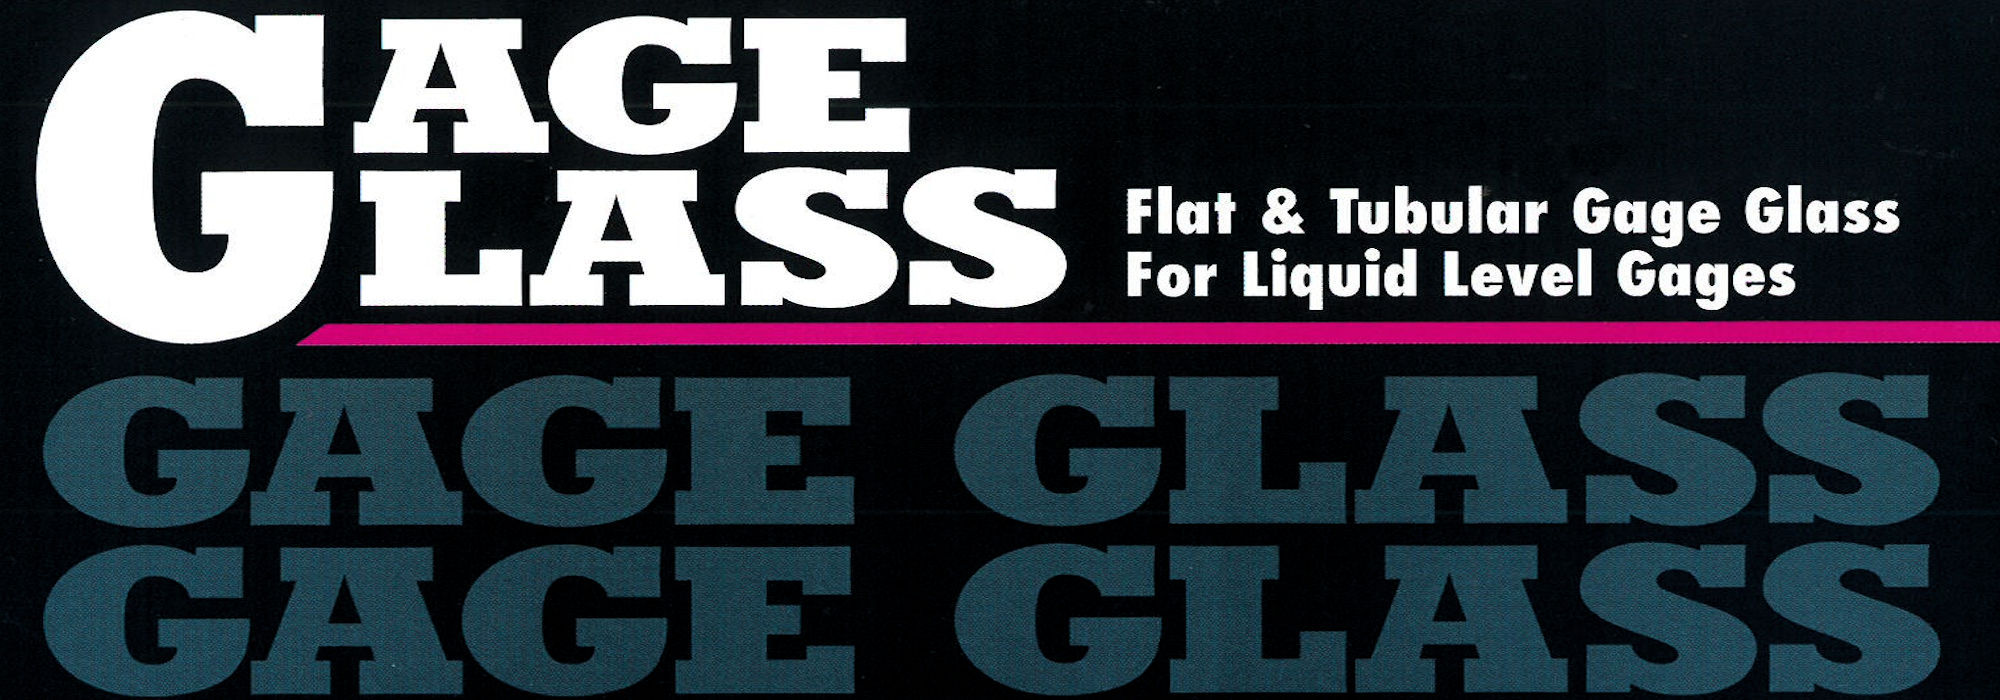 Gage-Glass-catalog